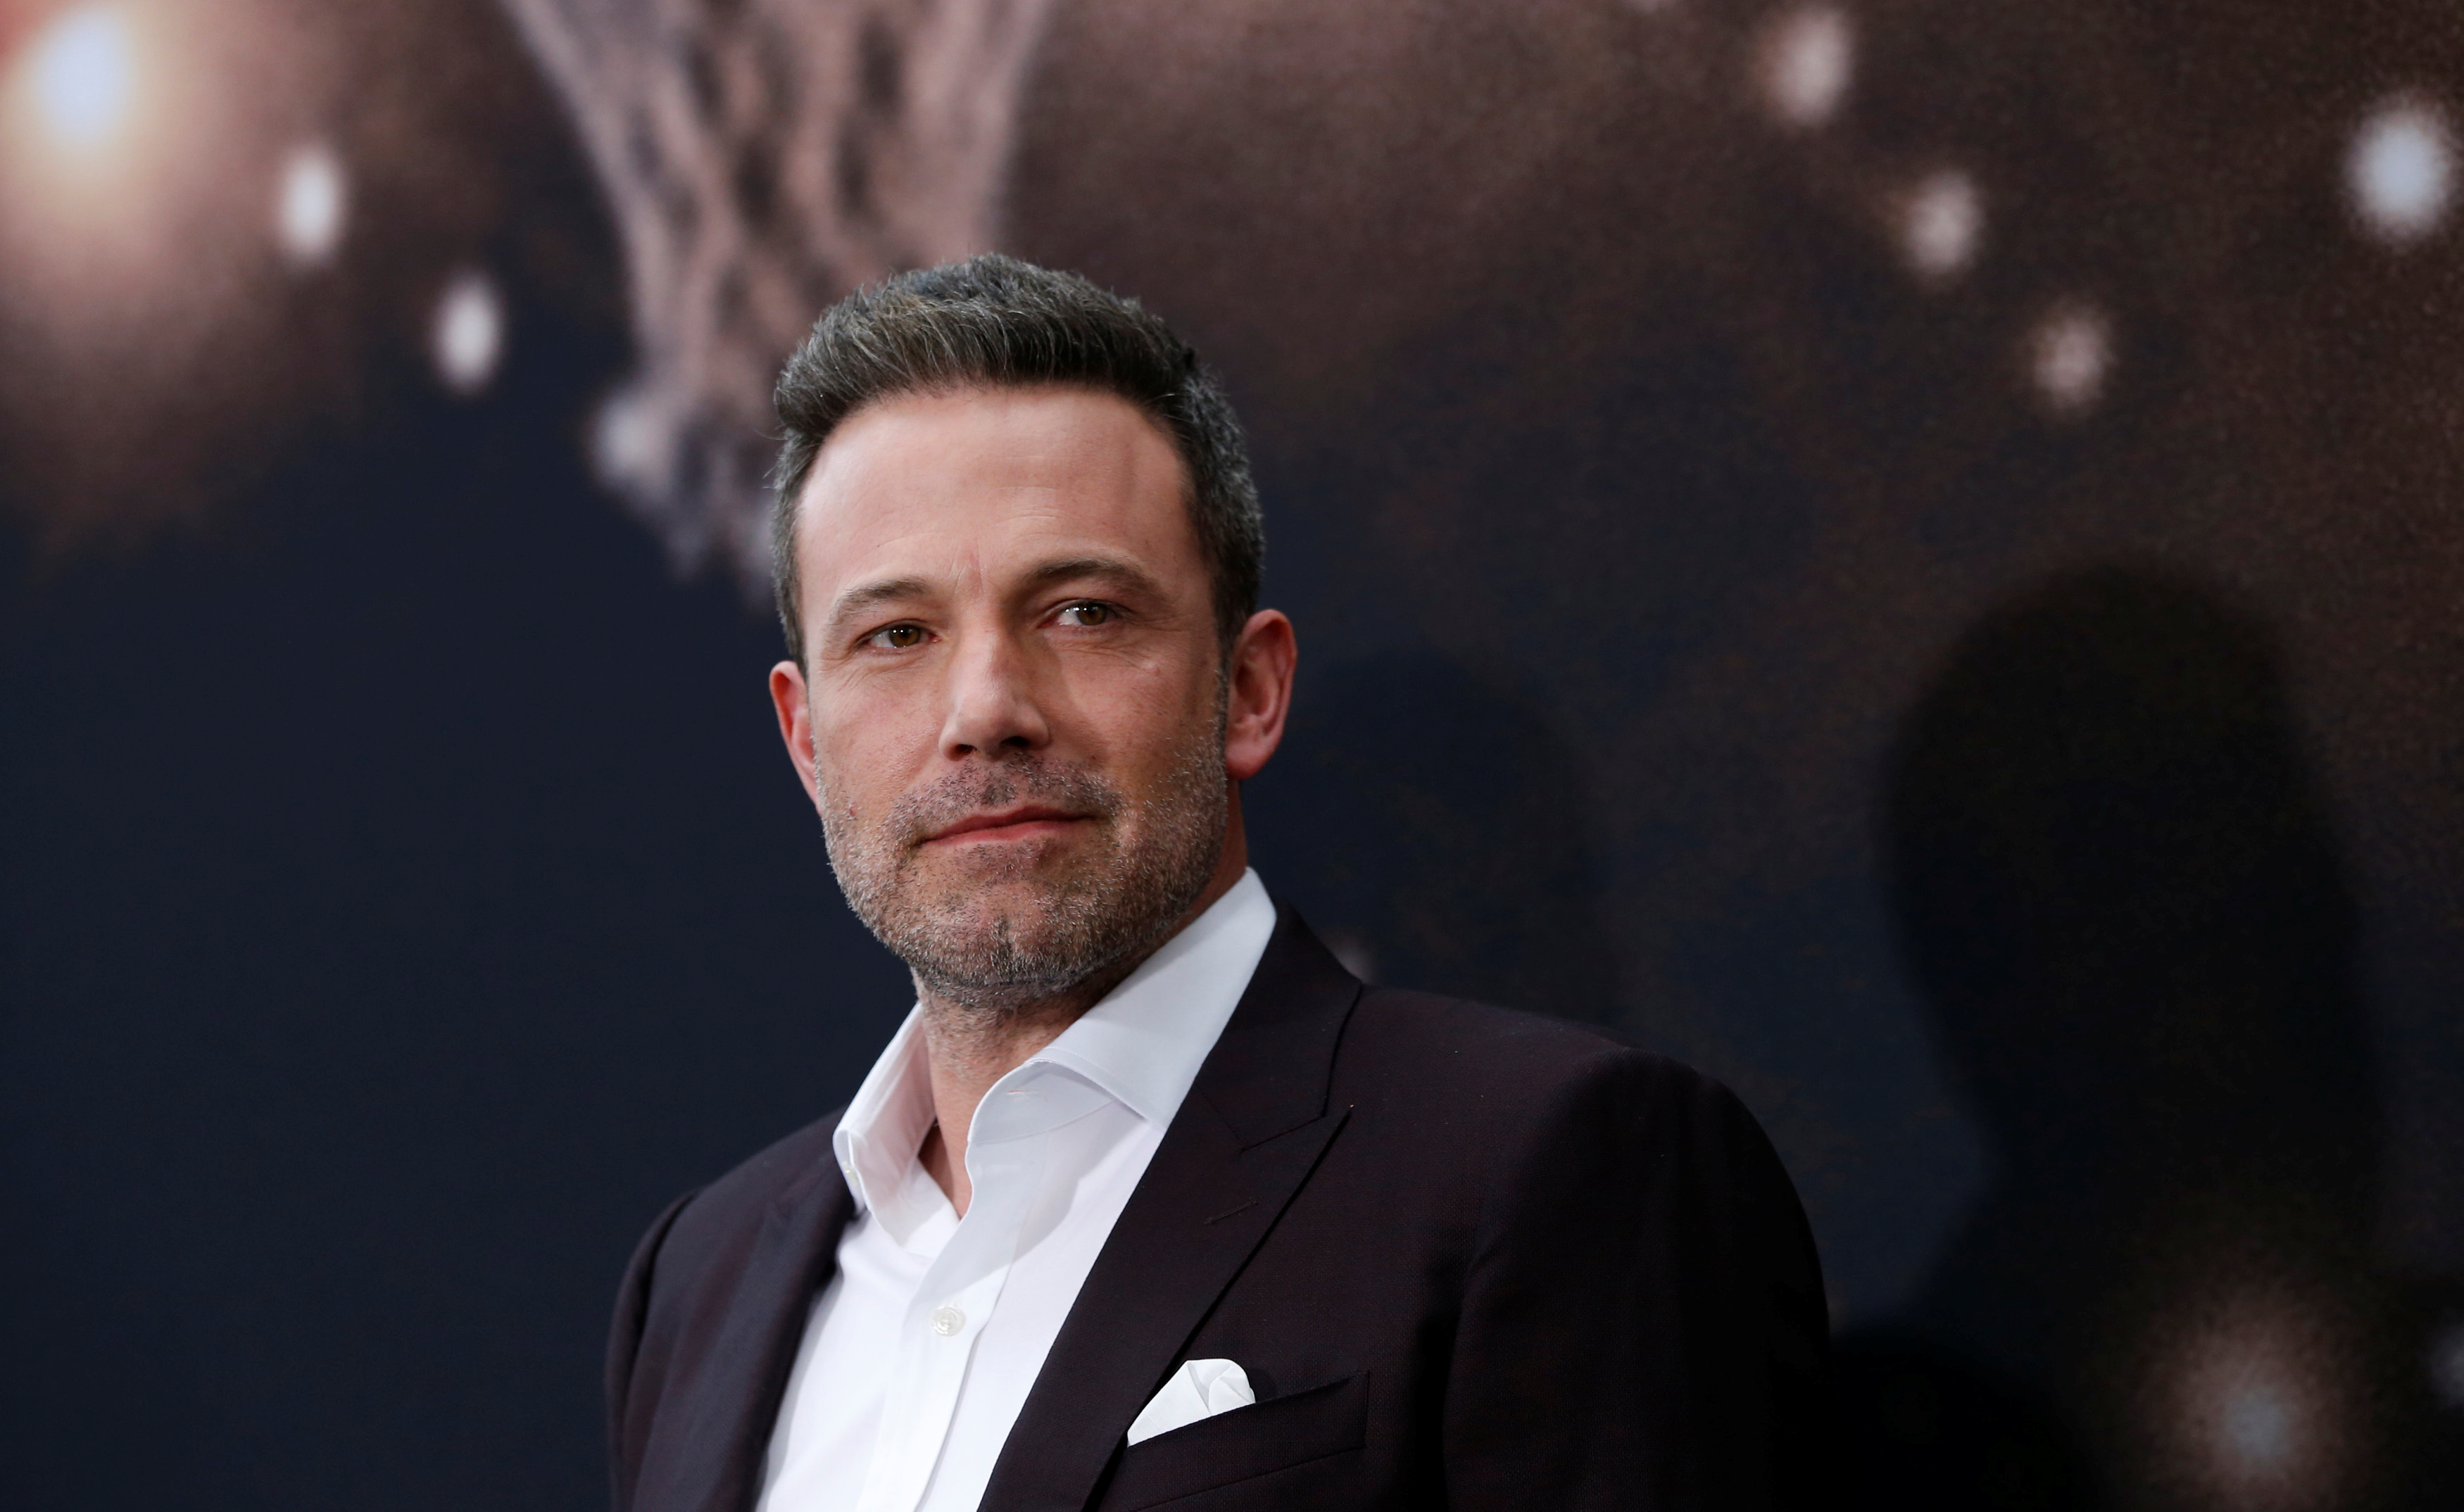 Cast member Ben Affleck poses at the premiere for the film